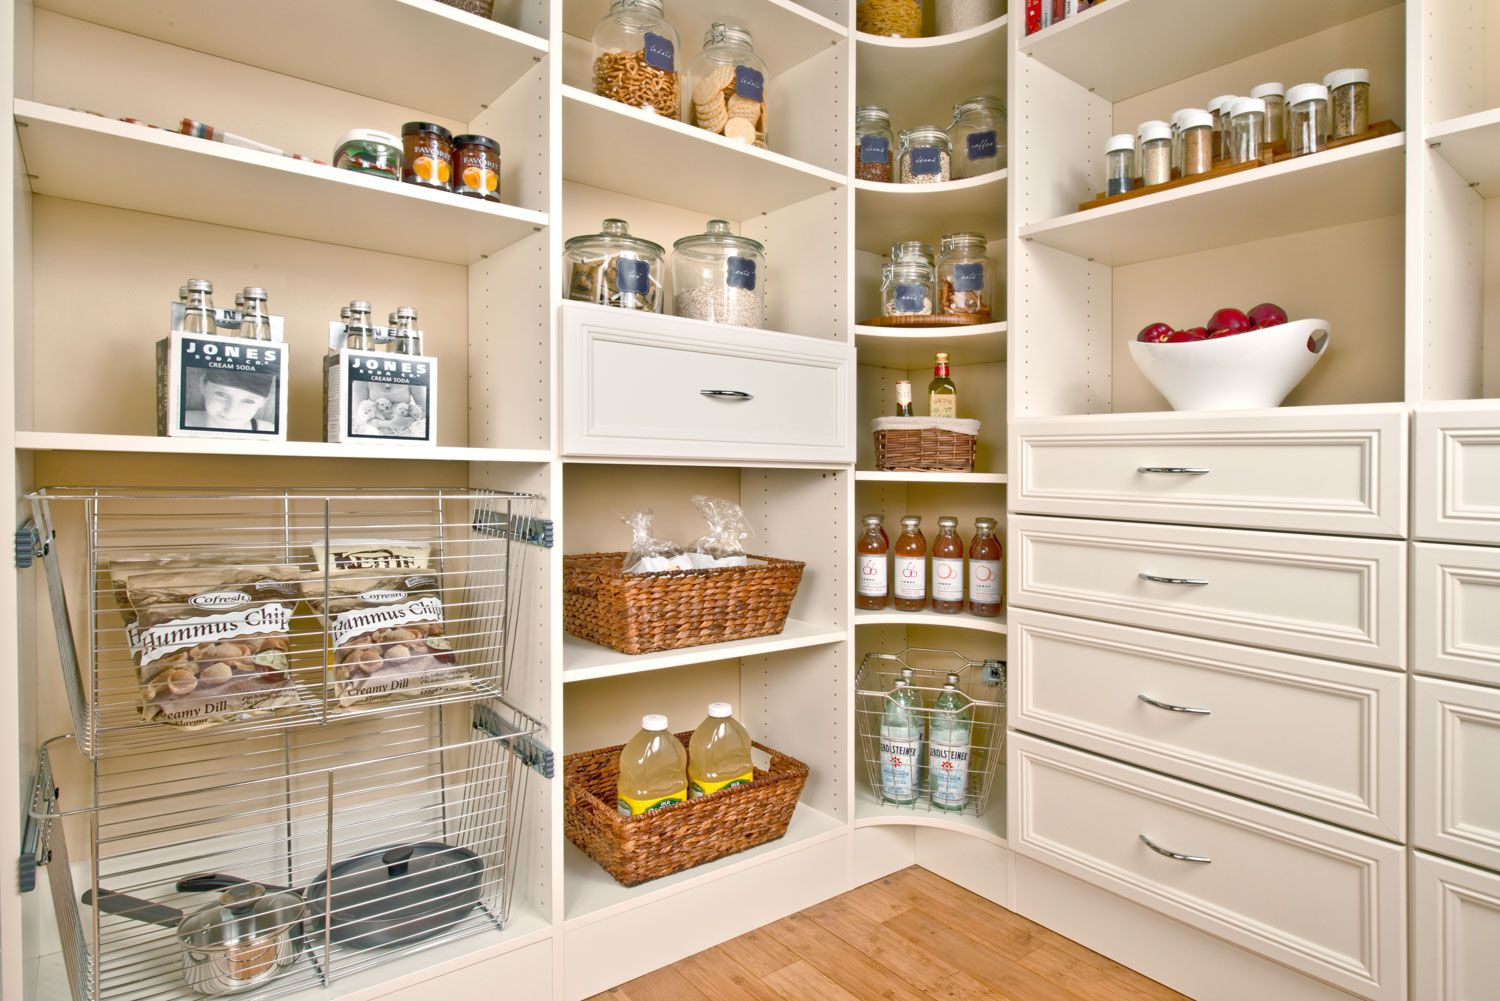 Importance Of Pantry Shelving Systems Pantry Shelving Shelves